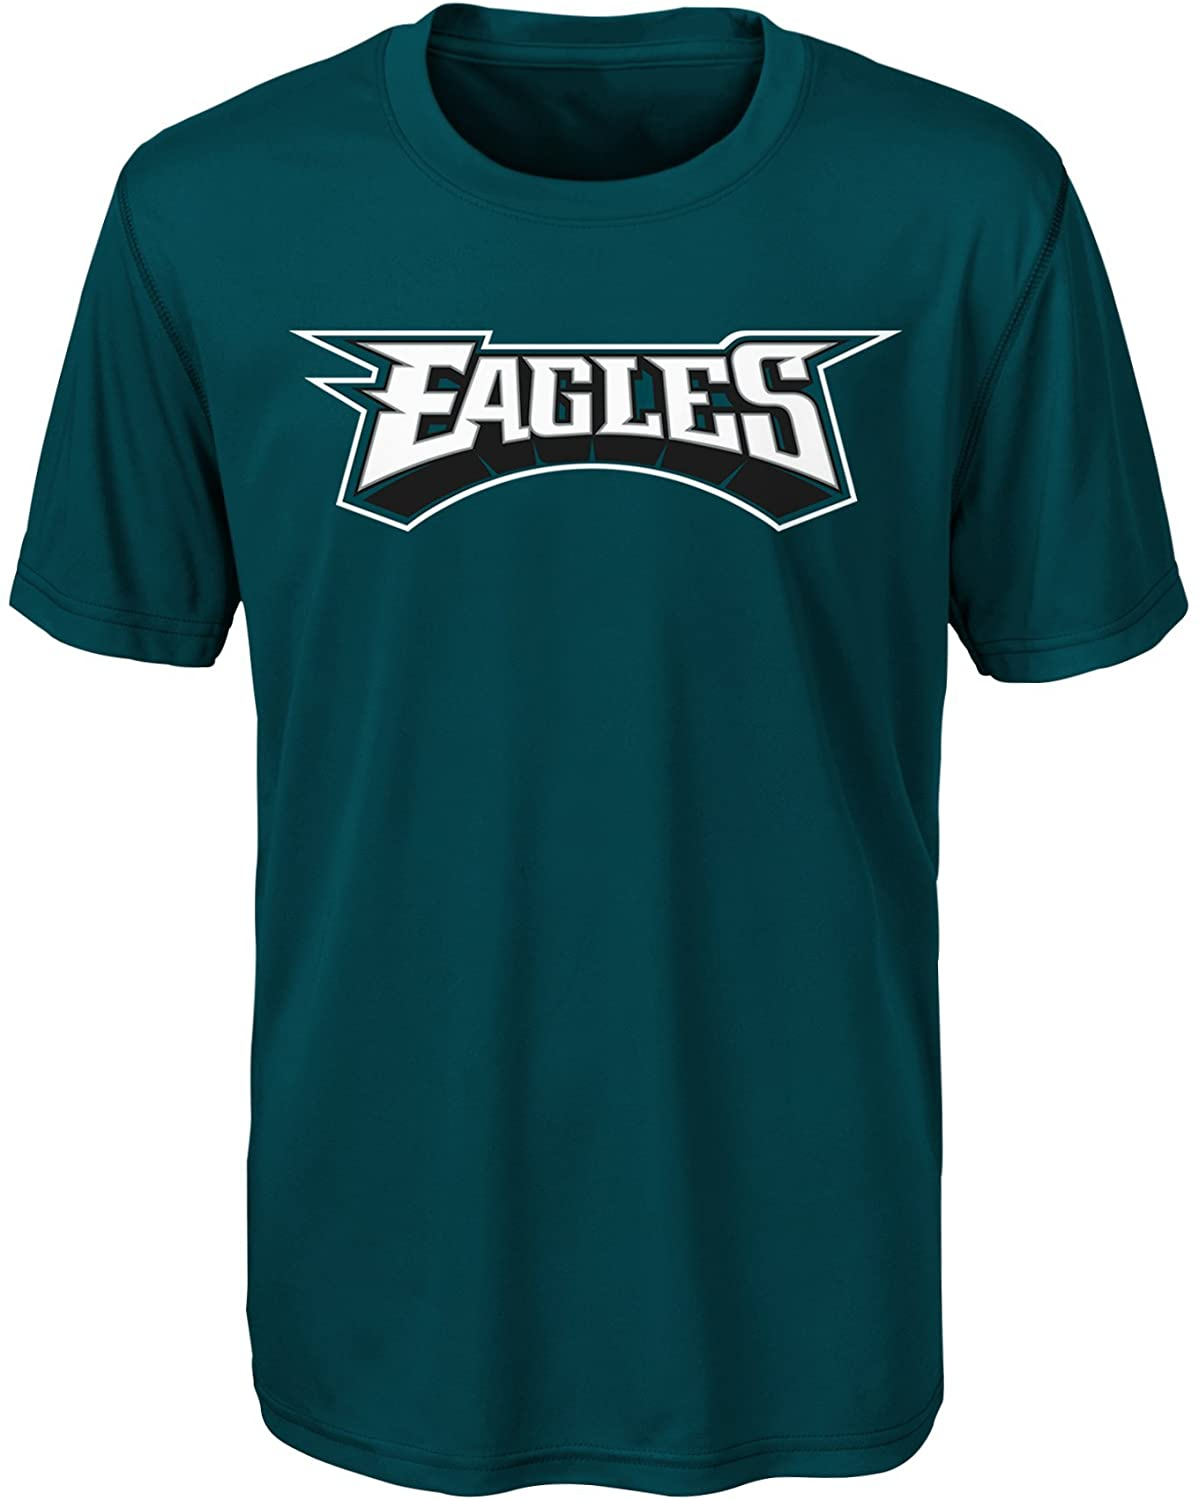 NFL Philadelphia Eagles Youth Boys